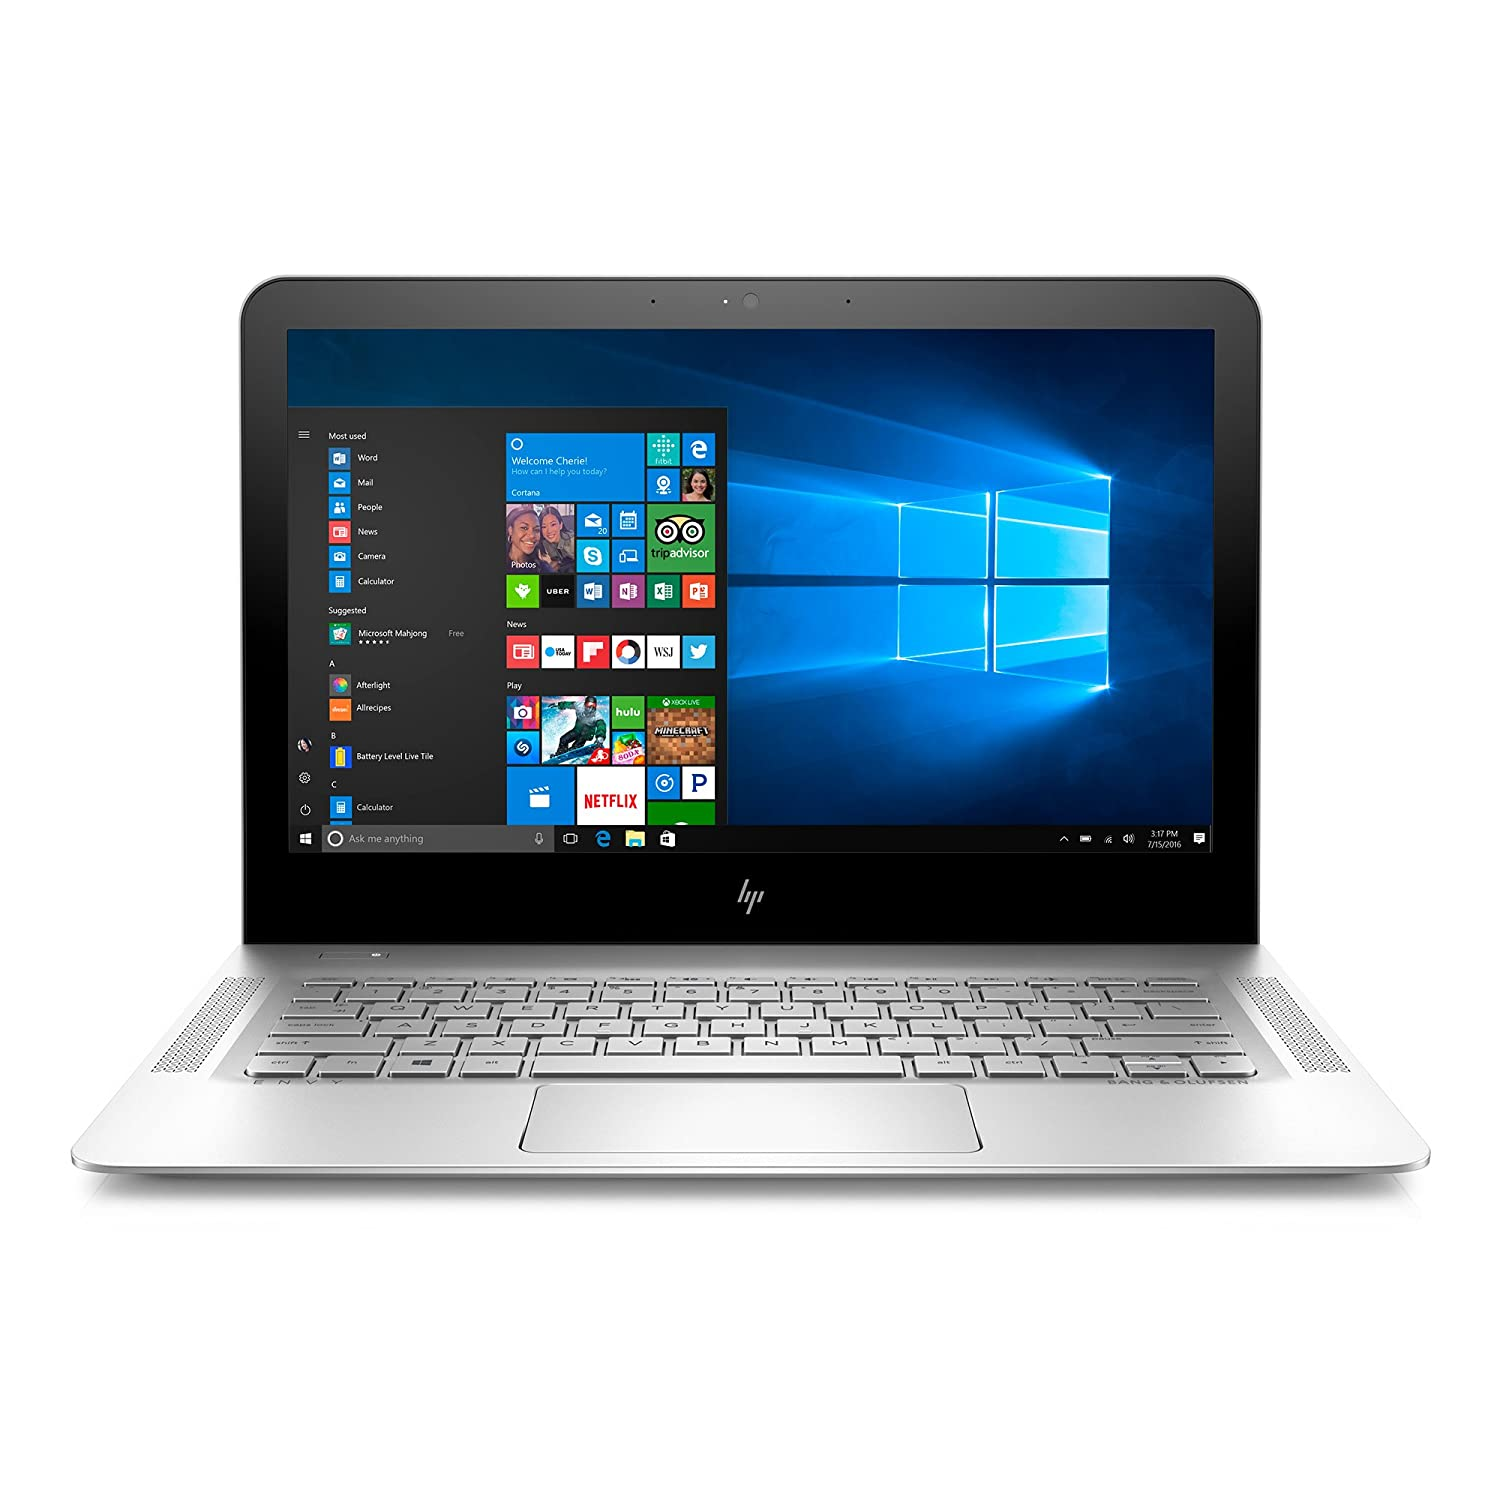 HP ENVY 13-ab016nr Notebook (Intel Core i5-7200U, 8GB RAM, 256GB...